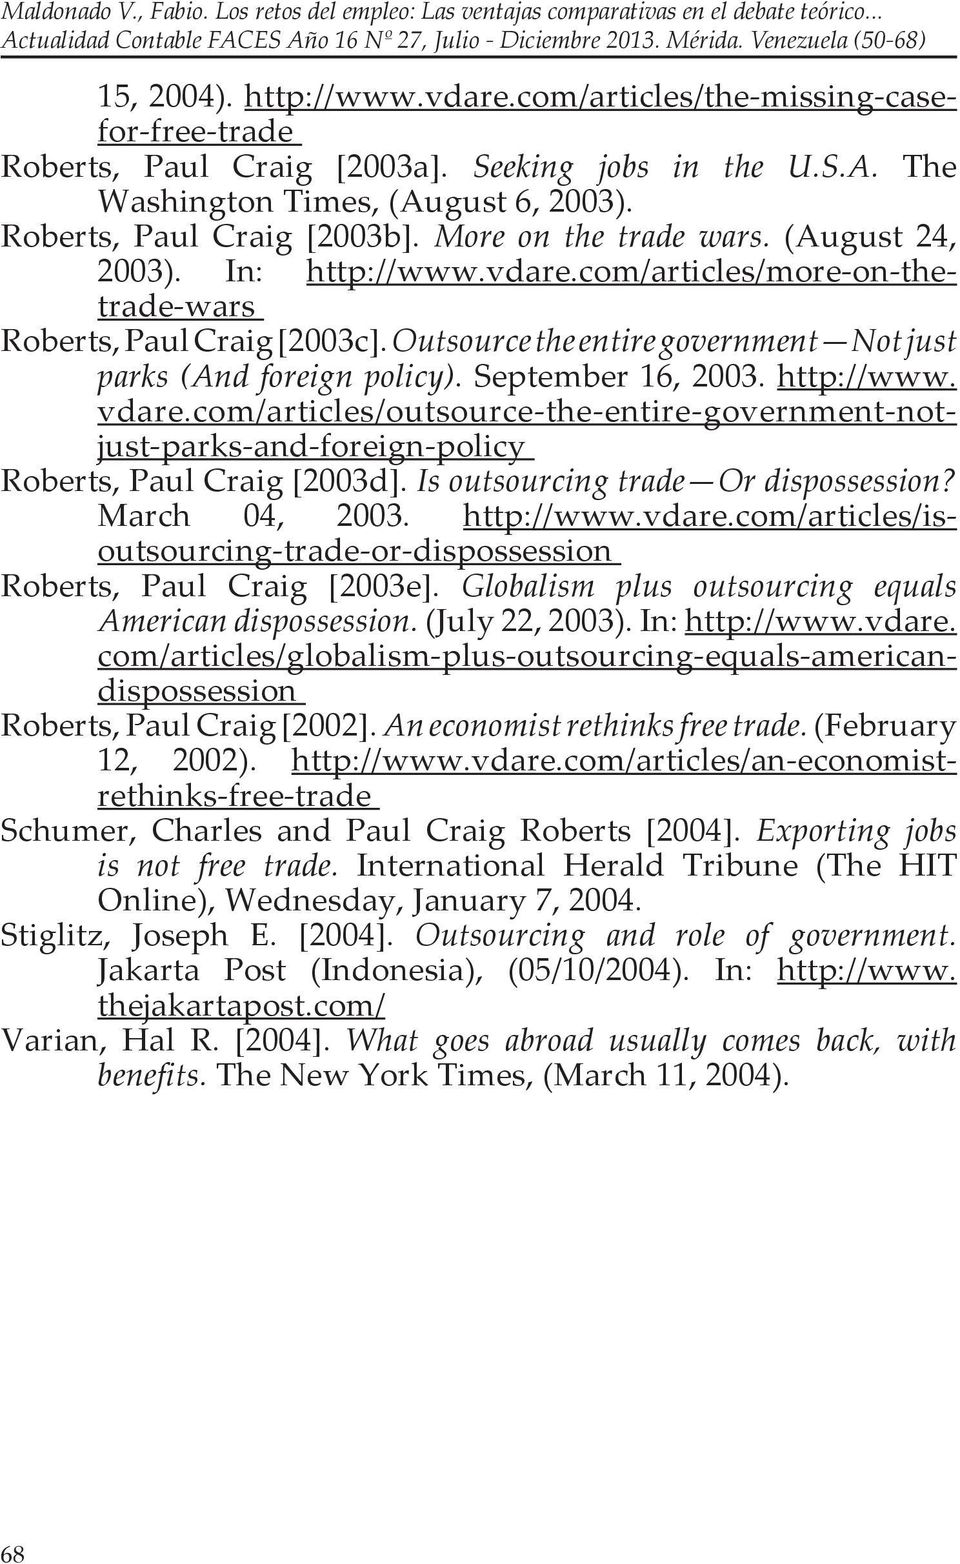 September 16, 2003. http://www. vdare.com/articles/outsource-the-entire-government-notjust-parks-and-foreign-policy Roberts, Paul Craig [2003d]. Is outsourcing trade Or dispossession? March 04, 2003.